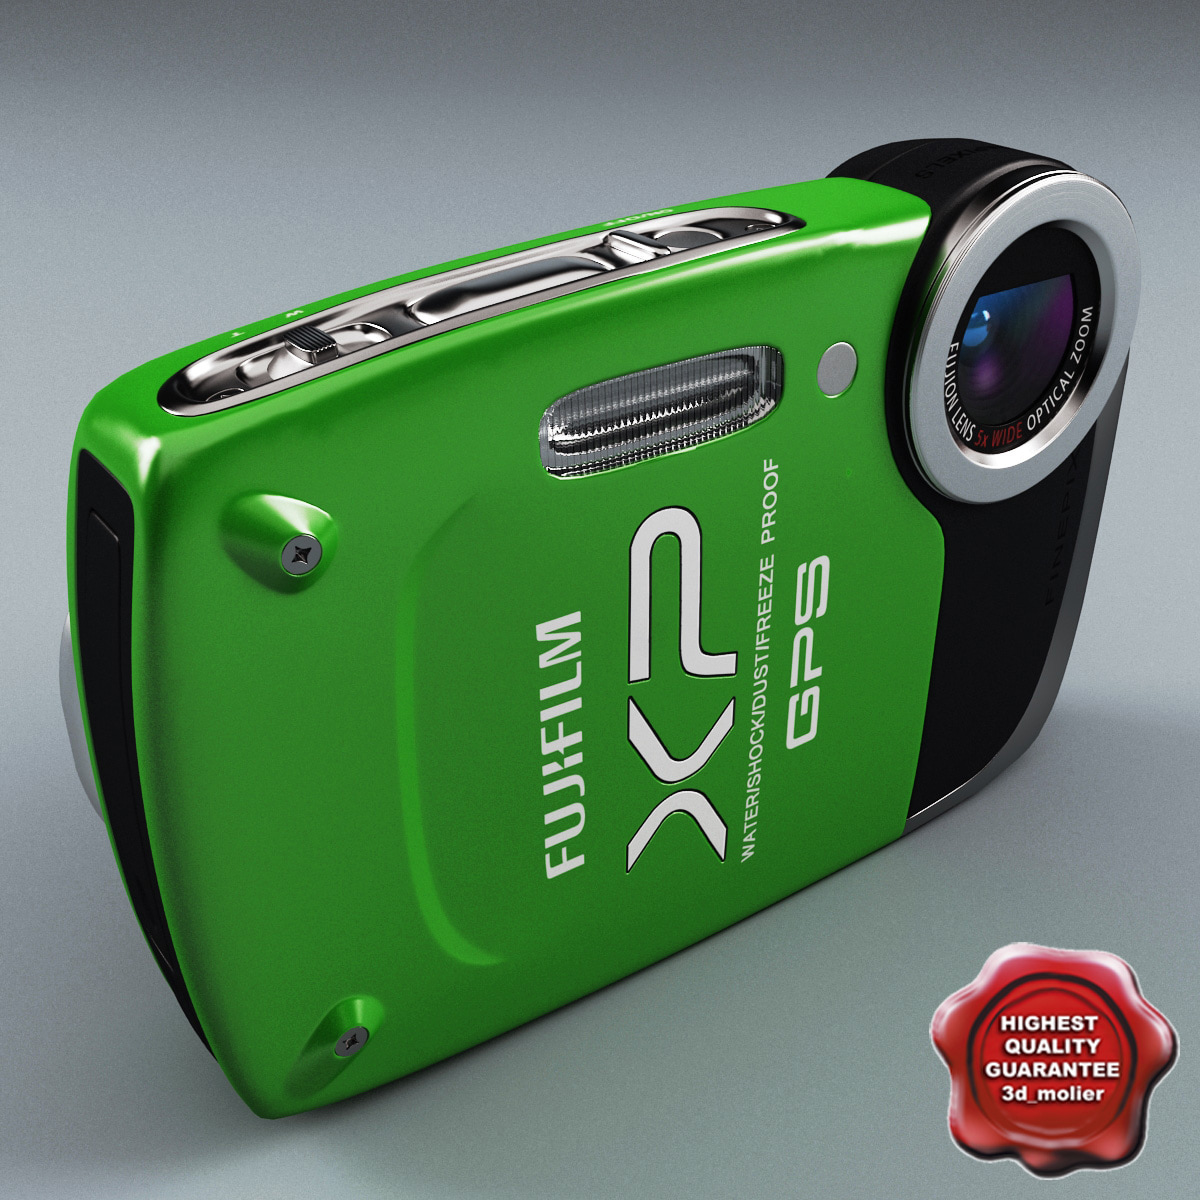 Fujifilm_FinePix_XP30_Green_00.jpg